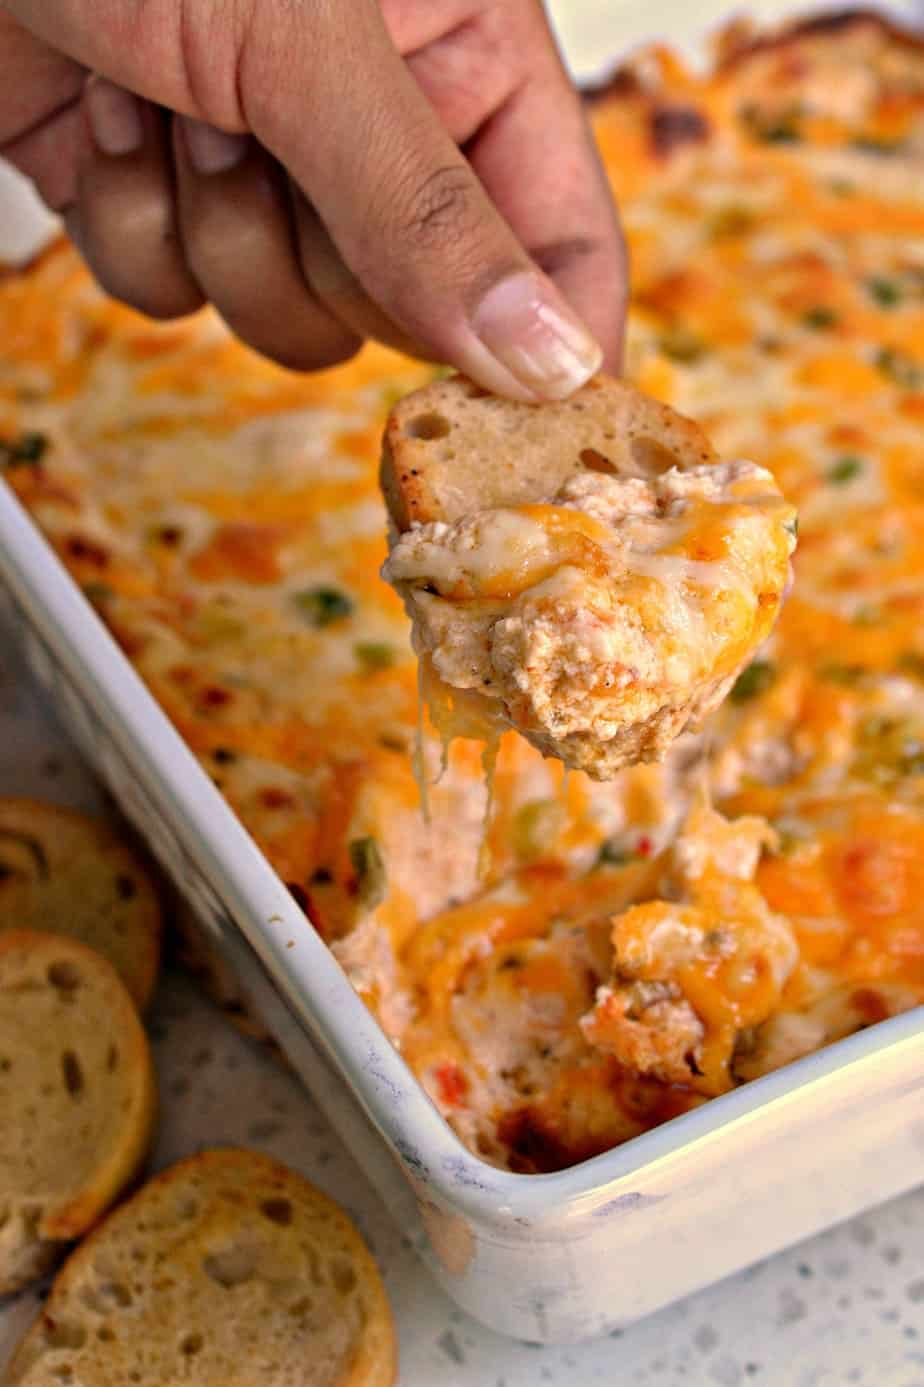 The best ultimate hot Crab Dip made with three different creamy cheeses and a touch of heat and spice.